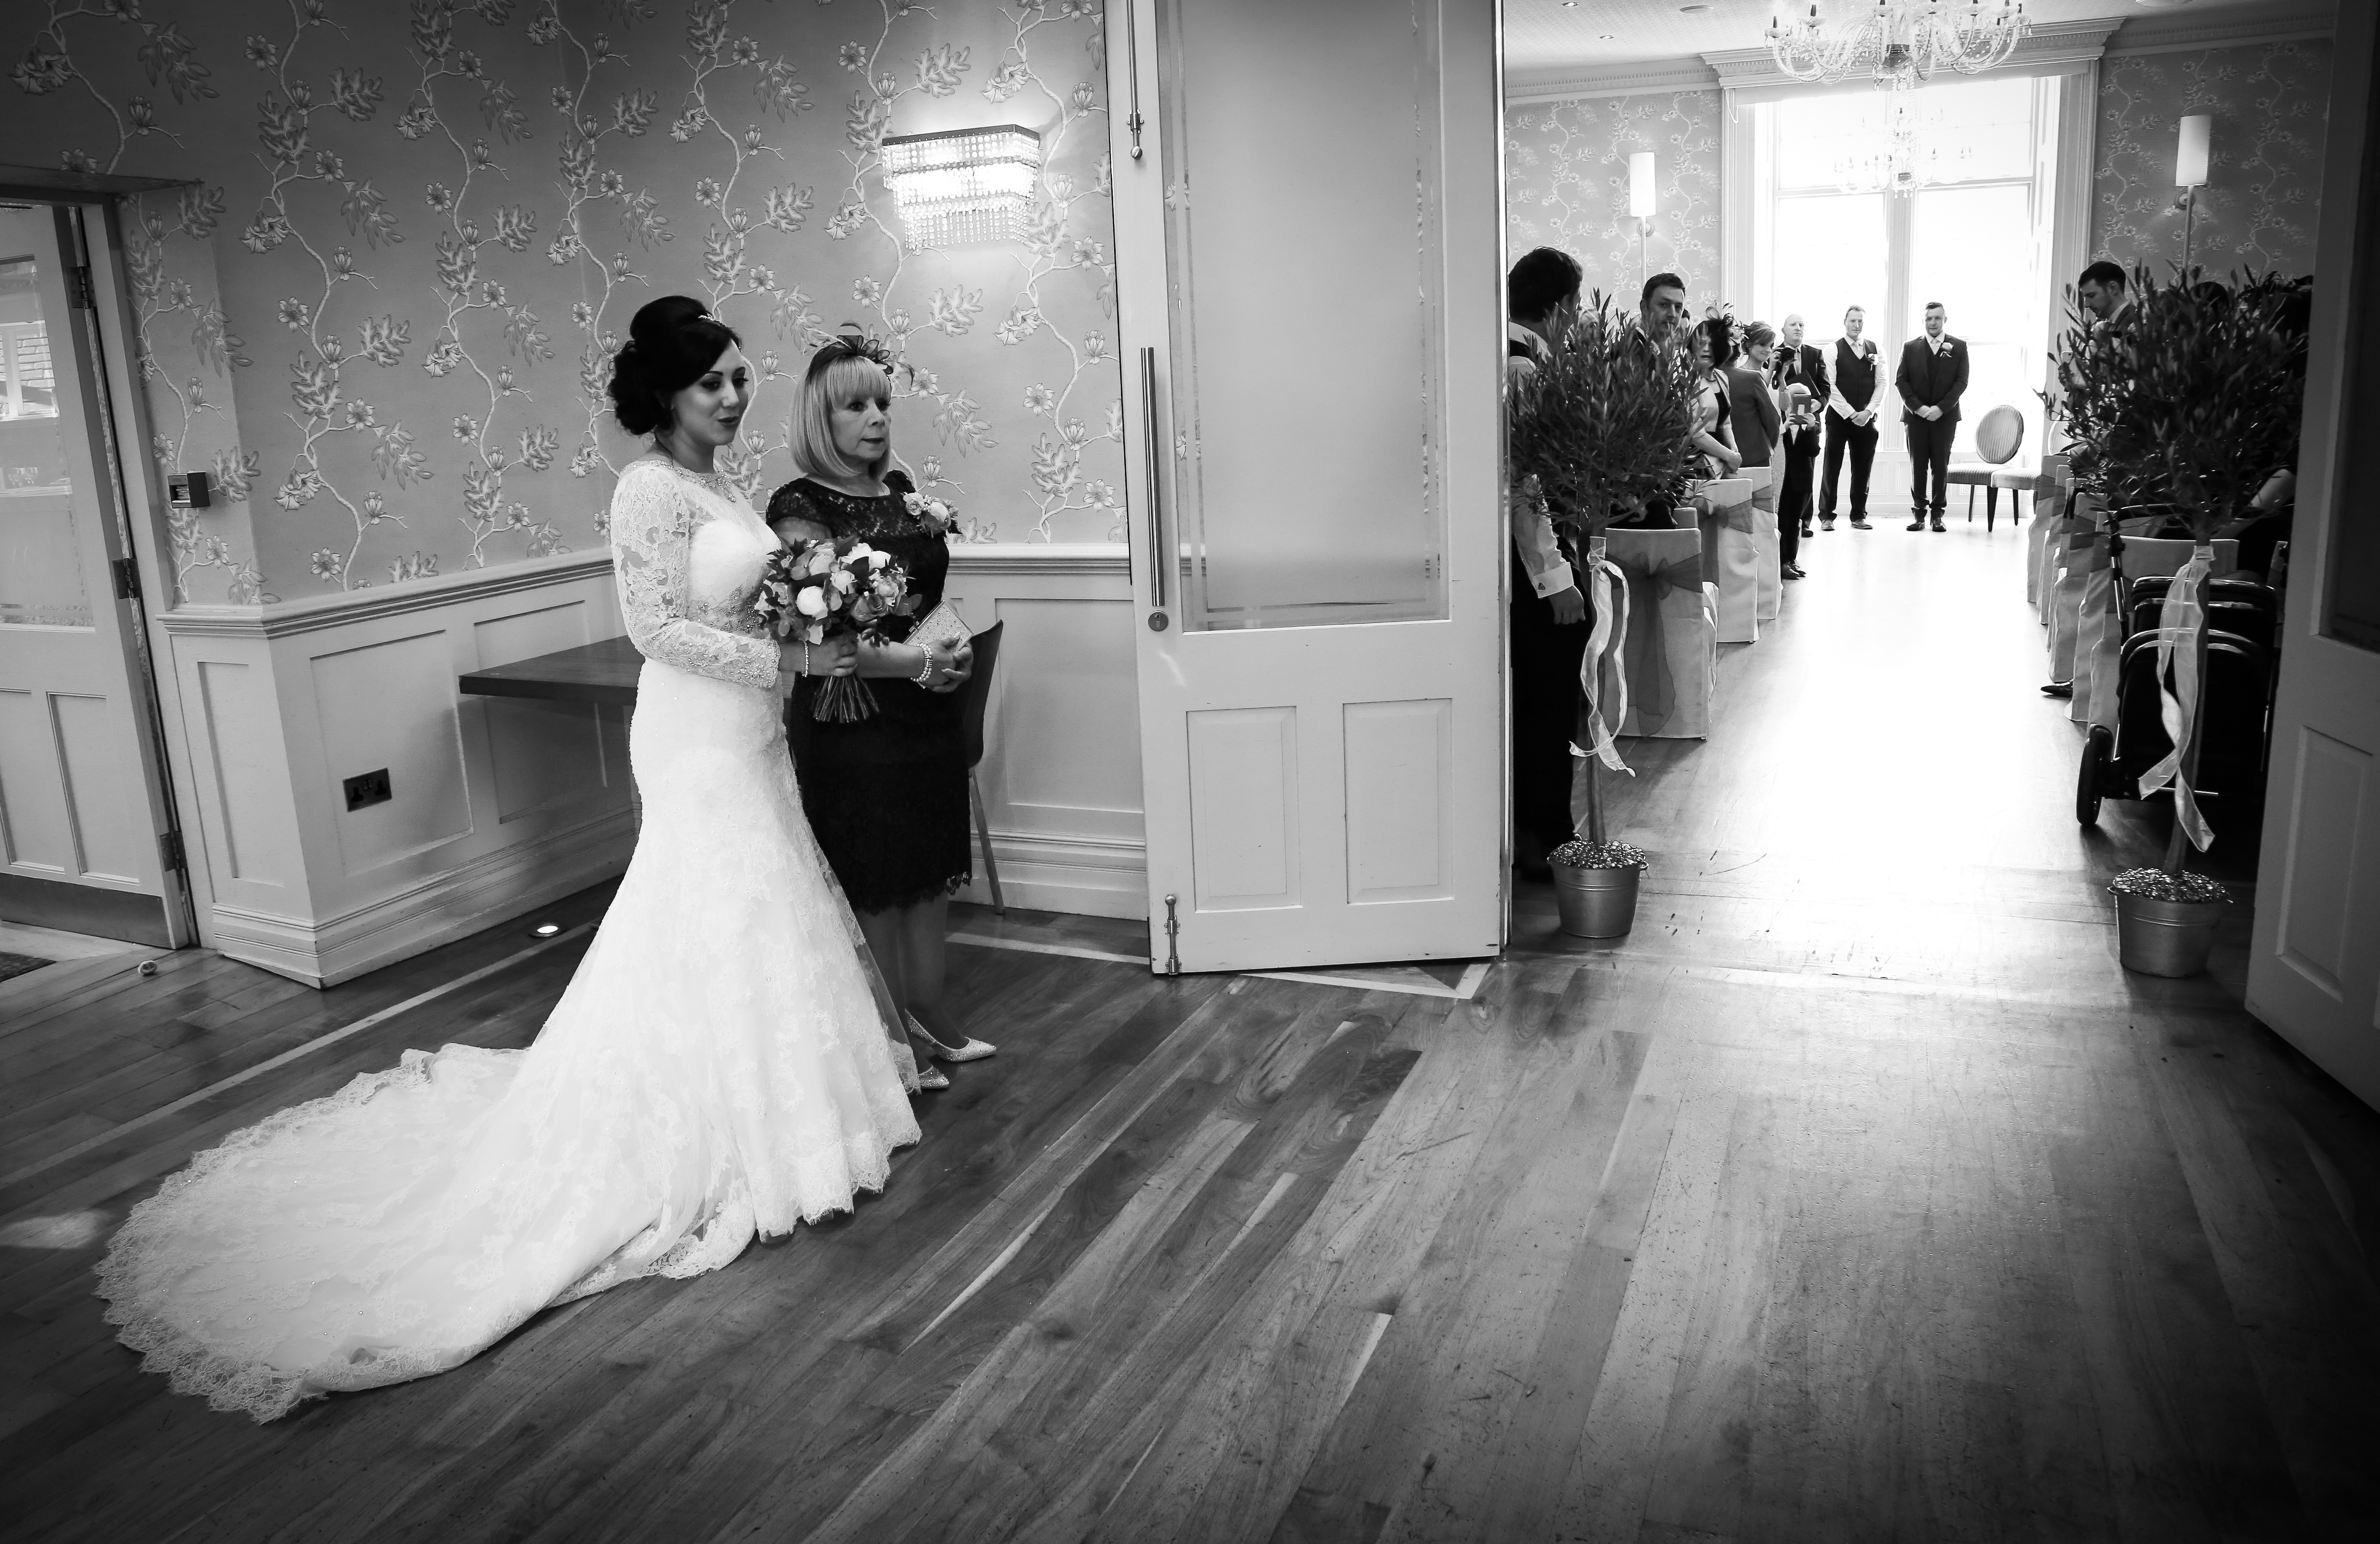 Aaron Delaney wedding photographer